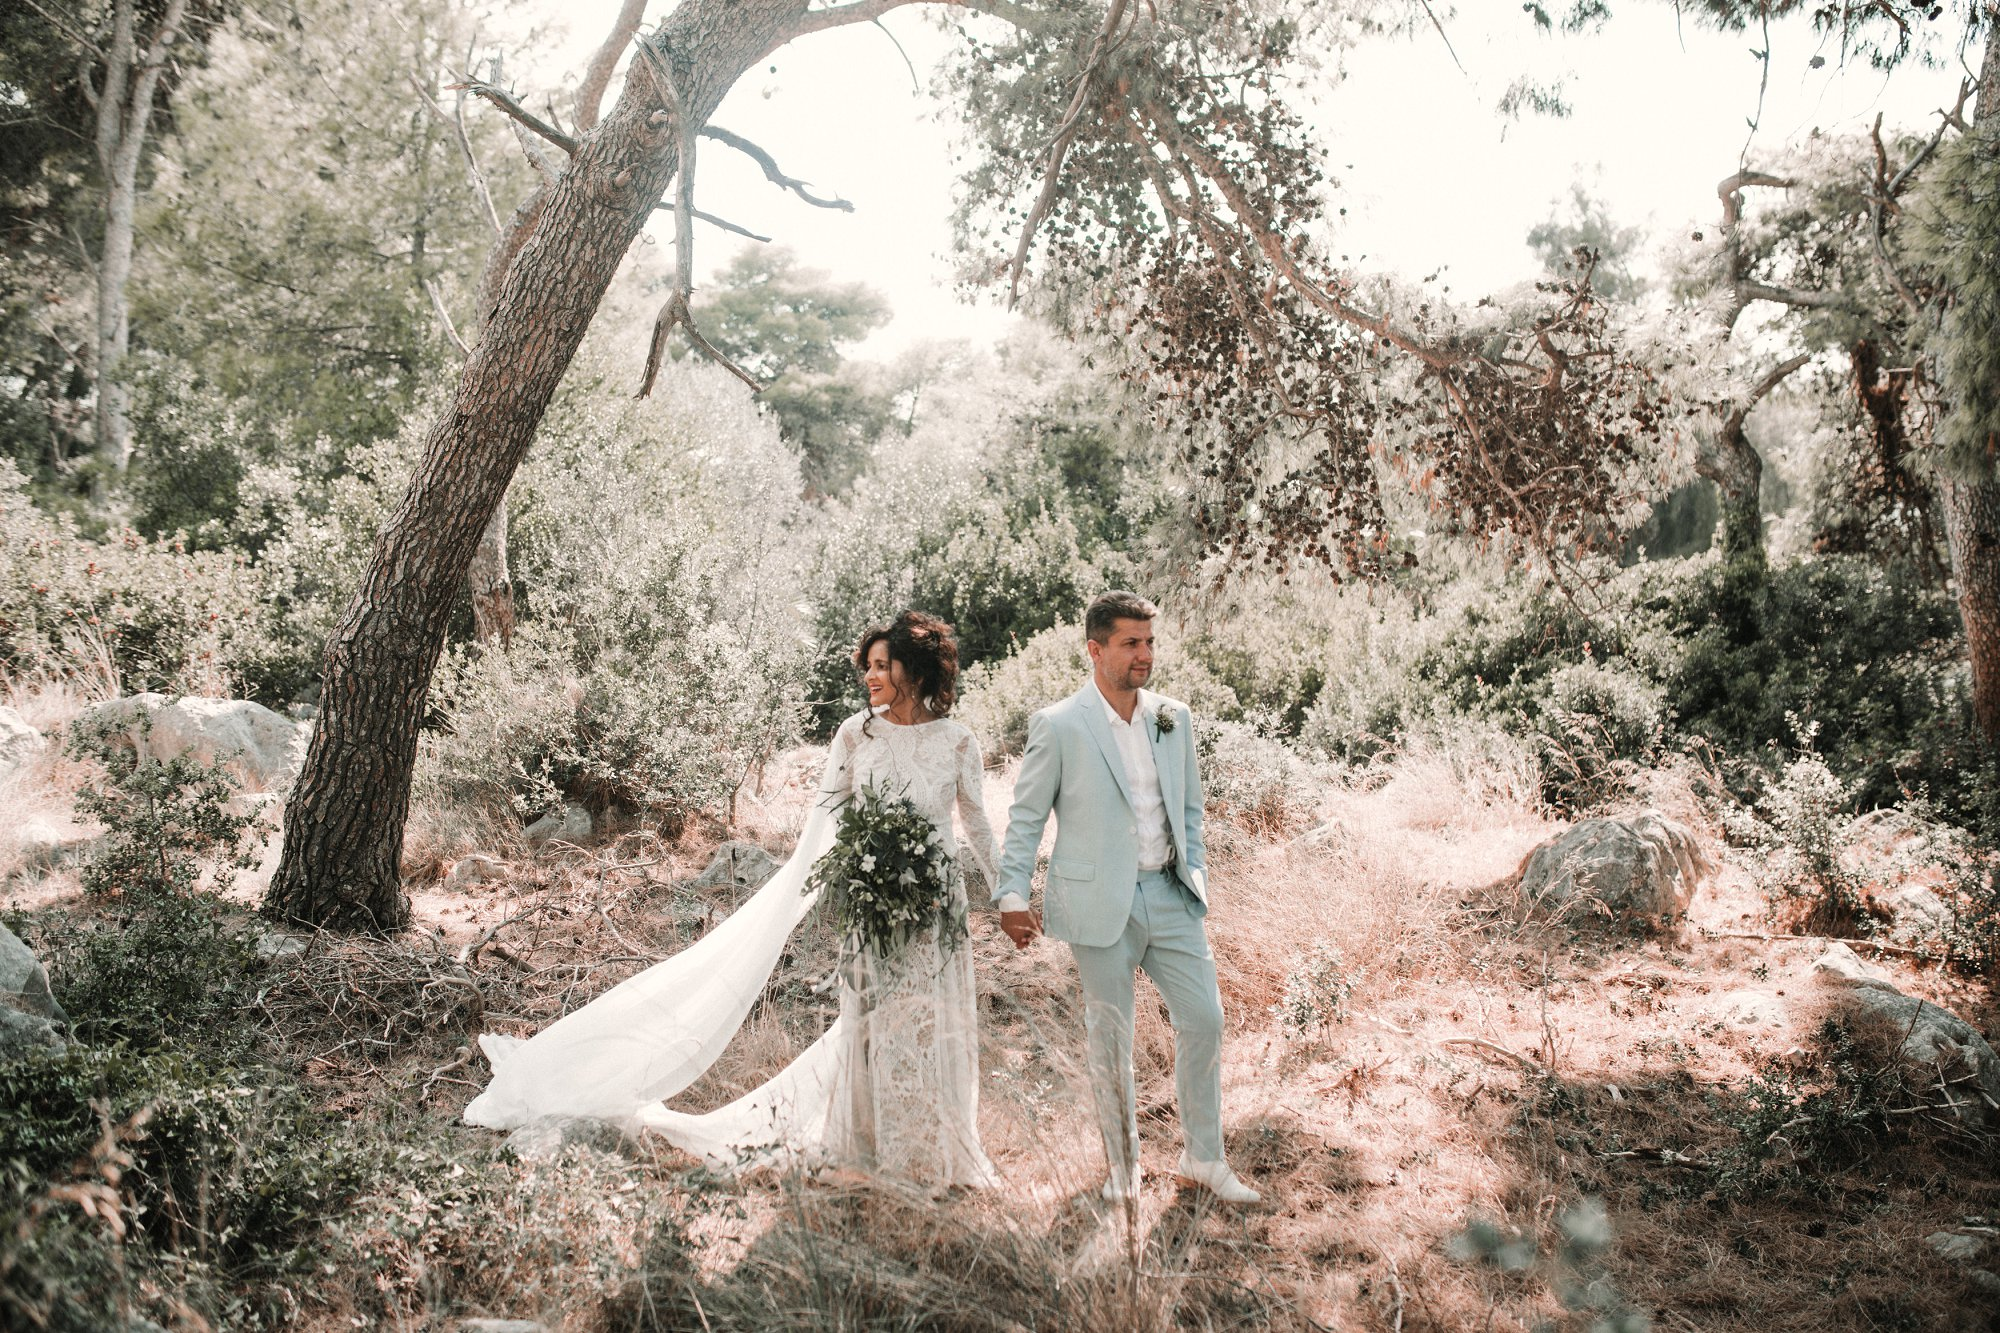 Romantic Wedding in Kefalonia at Katavathores club, with a stunning Grace Loves Lace wedding dress. Beautiful portraits by the agean sea. Relaxed couples session with all of the dancing. Romantic Kefalonia wedding photography. Photographed by Natalie Pluck. To see more from this wedding click here: https://www.nataliepluck.com/romantic-wedding-in-kefalonia/ #romanticweddingkefalonia #kefaloniawedding #graceloveslace #graceloveslaceweddingdress #laceweddingdress #relaxedweddinggreece #relaxedweddingphotography #kefaloniaweddingphotographer #kefaloniaweddingphotography #katavathoreswedding #katavathoresclub #romanticweddinginspiration #laidbackweddingphotography #weddingphotographyinspiration #greekweddings #weddingsingreece #weddingsbythesea #weddingbytheocean #weddinginspiration #weddinginspiration2019‎